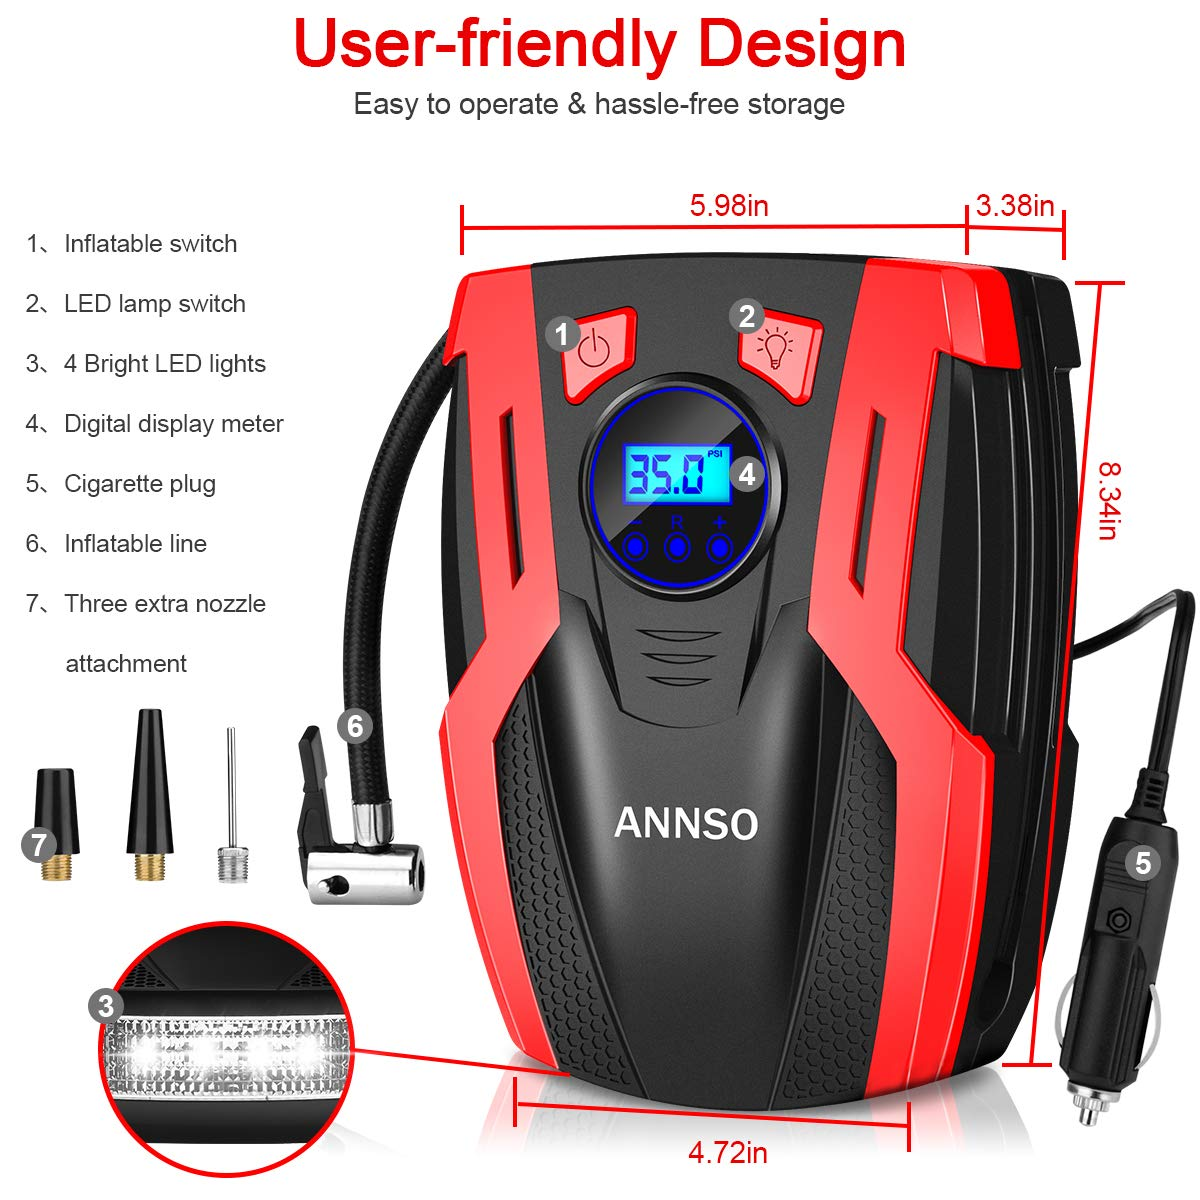 ANNSO Air Compressor Tire Inflator,Car Tire Pump Air Pump for Car Tires, 12v Digital Car Tire Inflator with Gauge LED Light,150 PSI Portable Air Compressor for Car Tires Other Inflatables by ANNSO (Image #6)